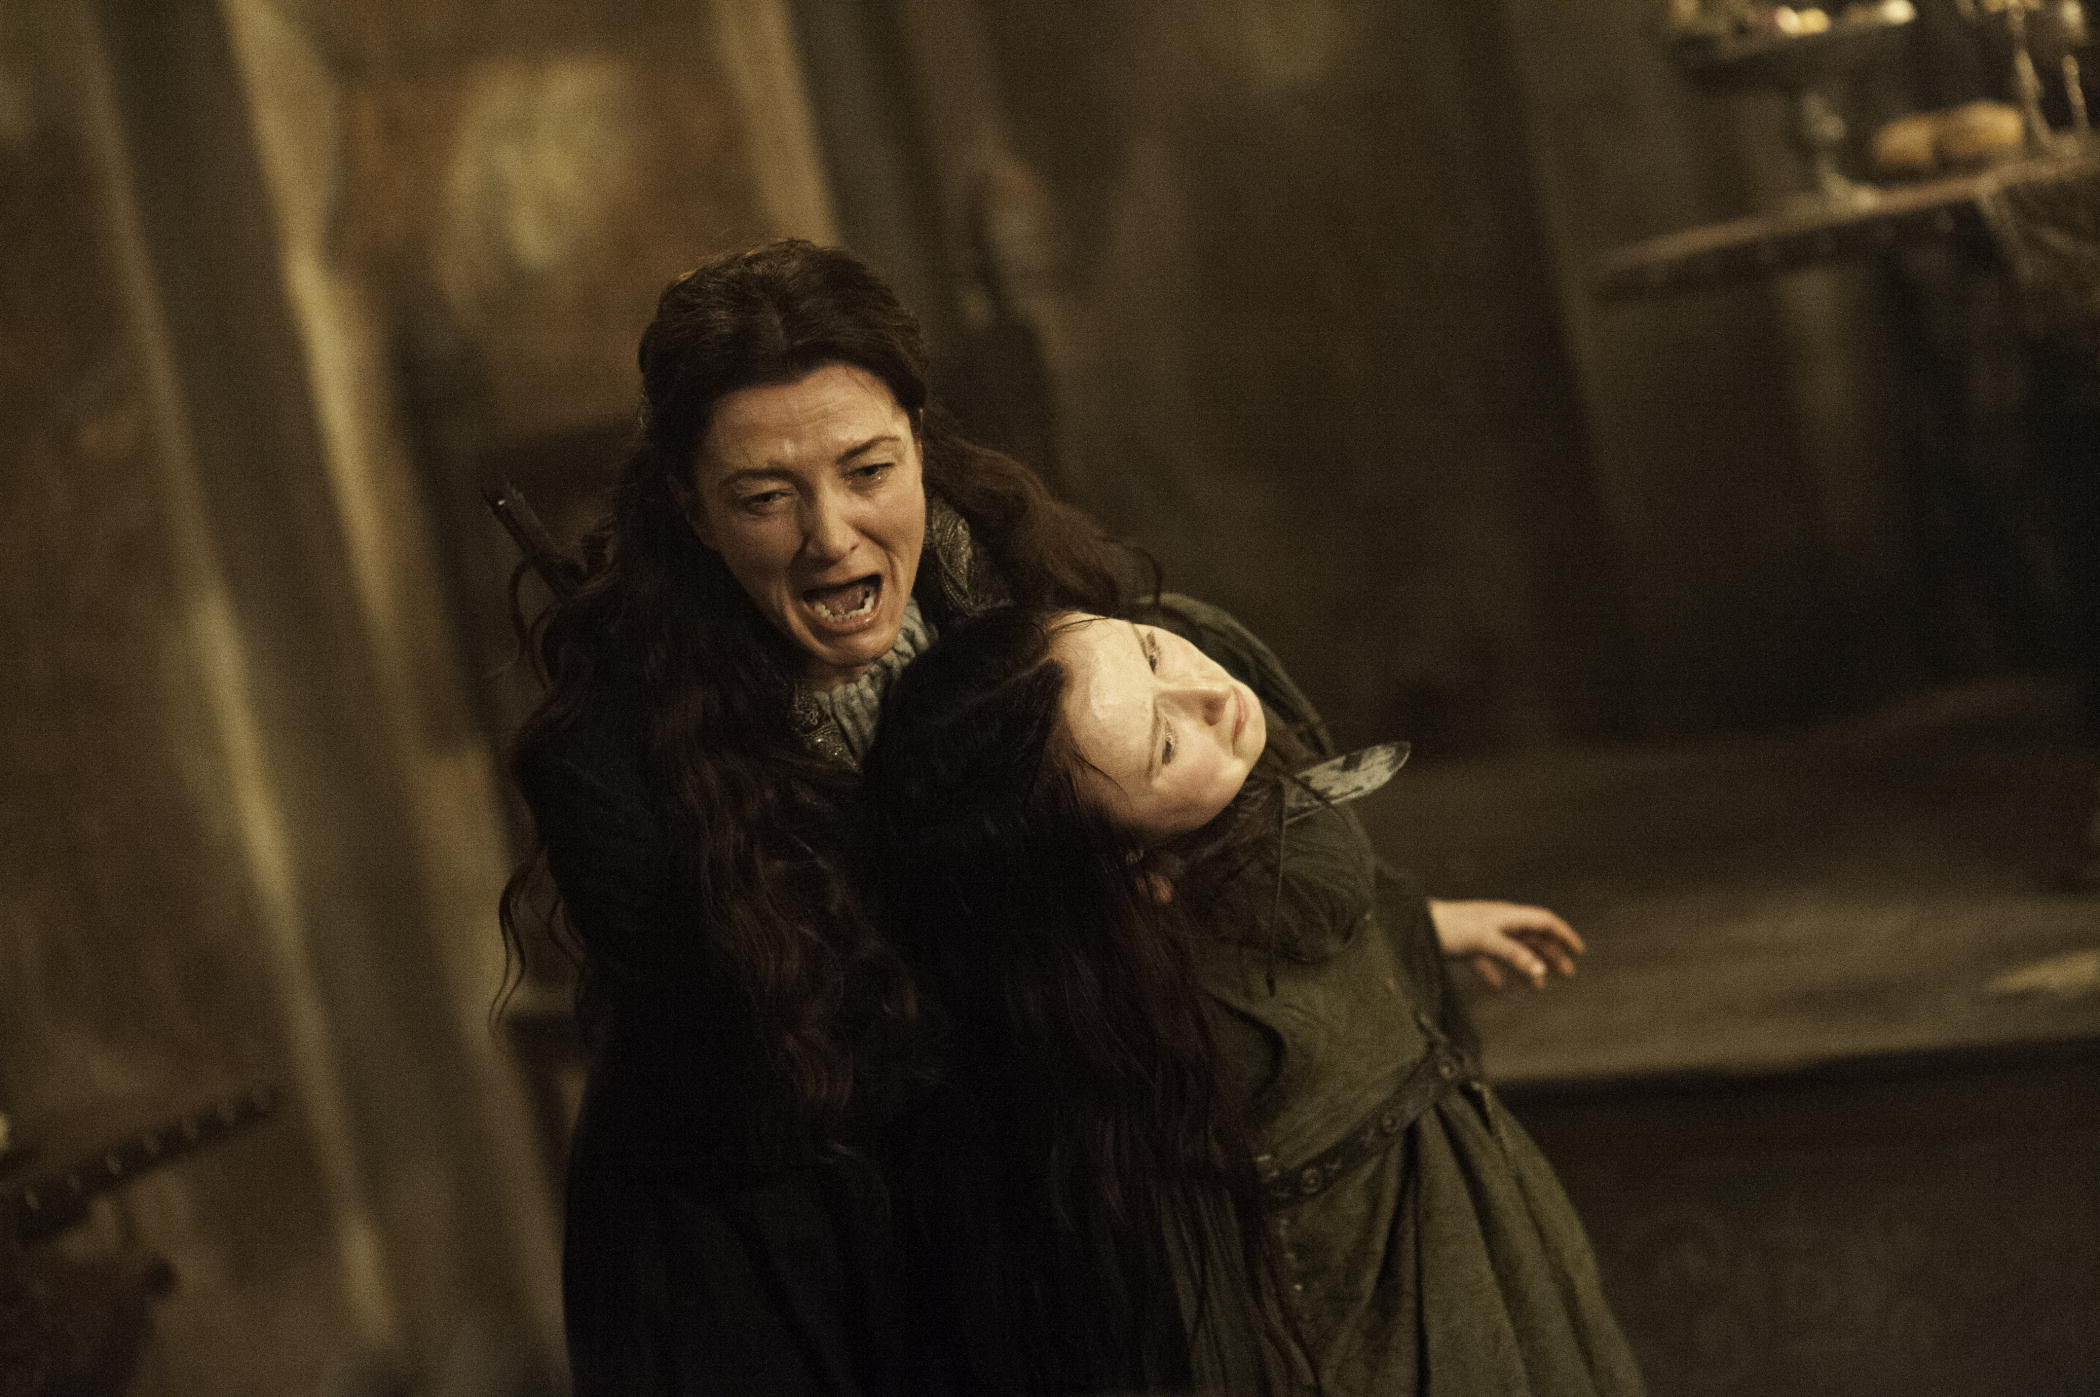 When Is The Red Wedding.Episode 29 The Rains Of Castamere Analysis Winter Is